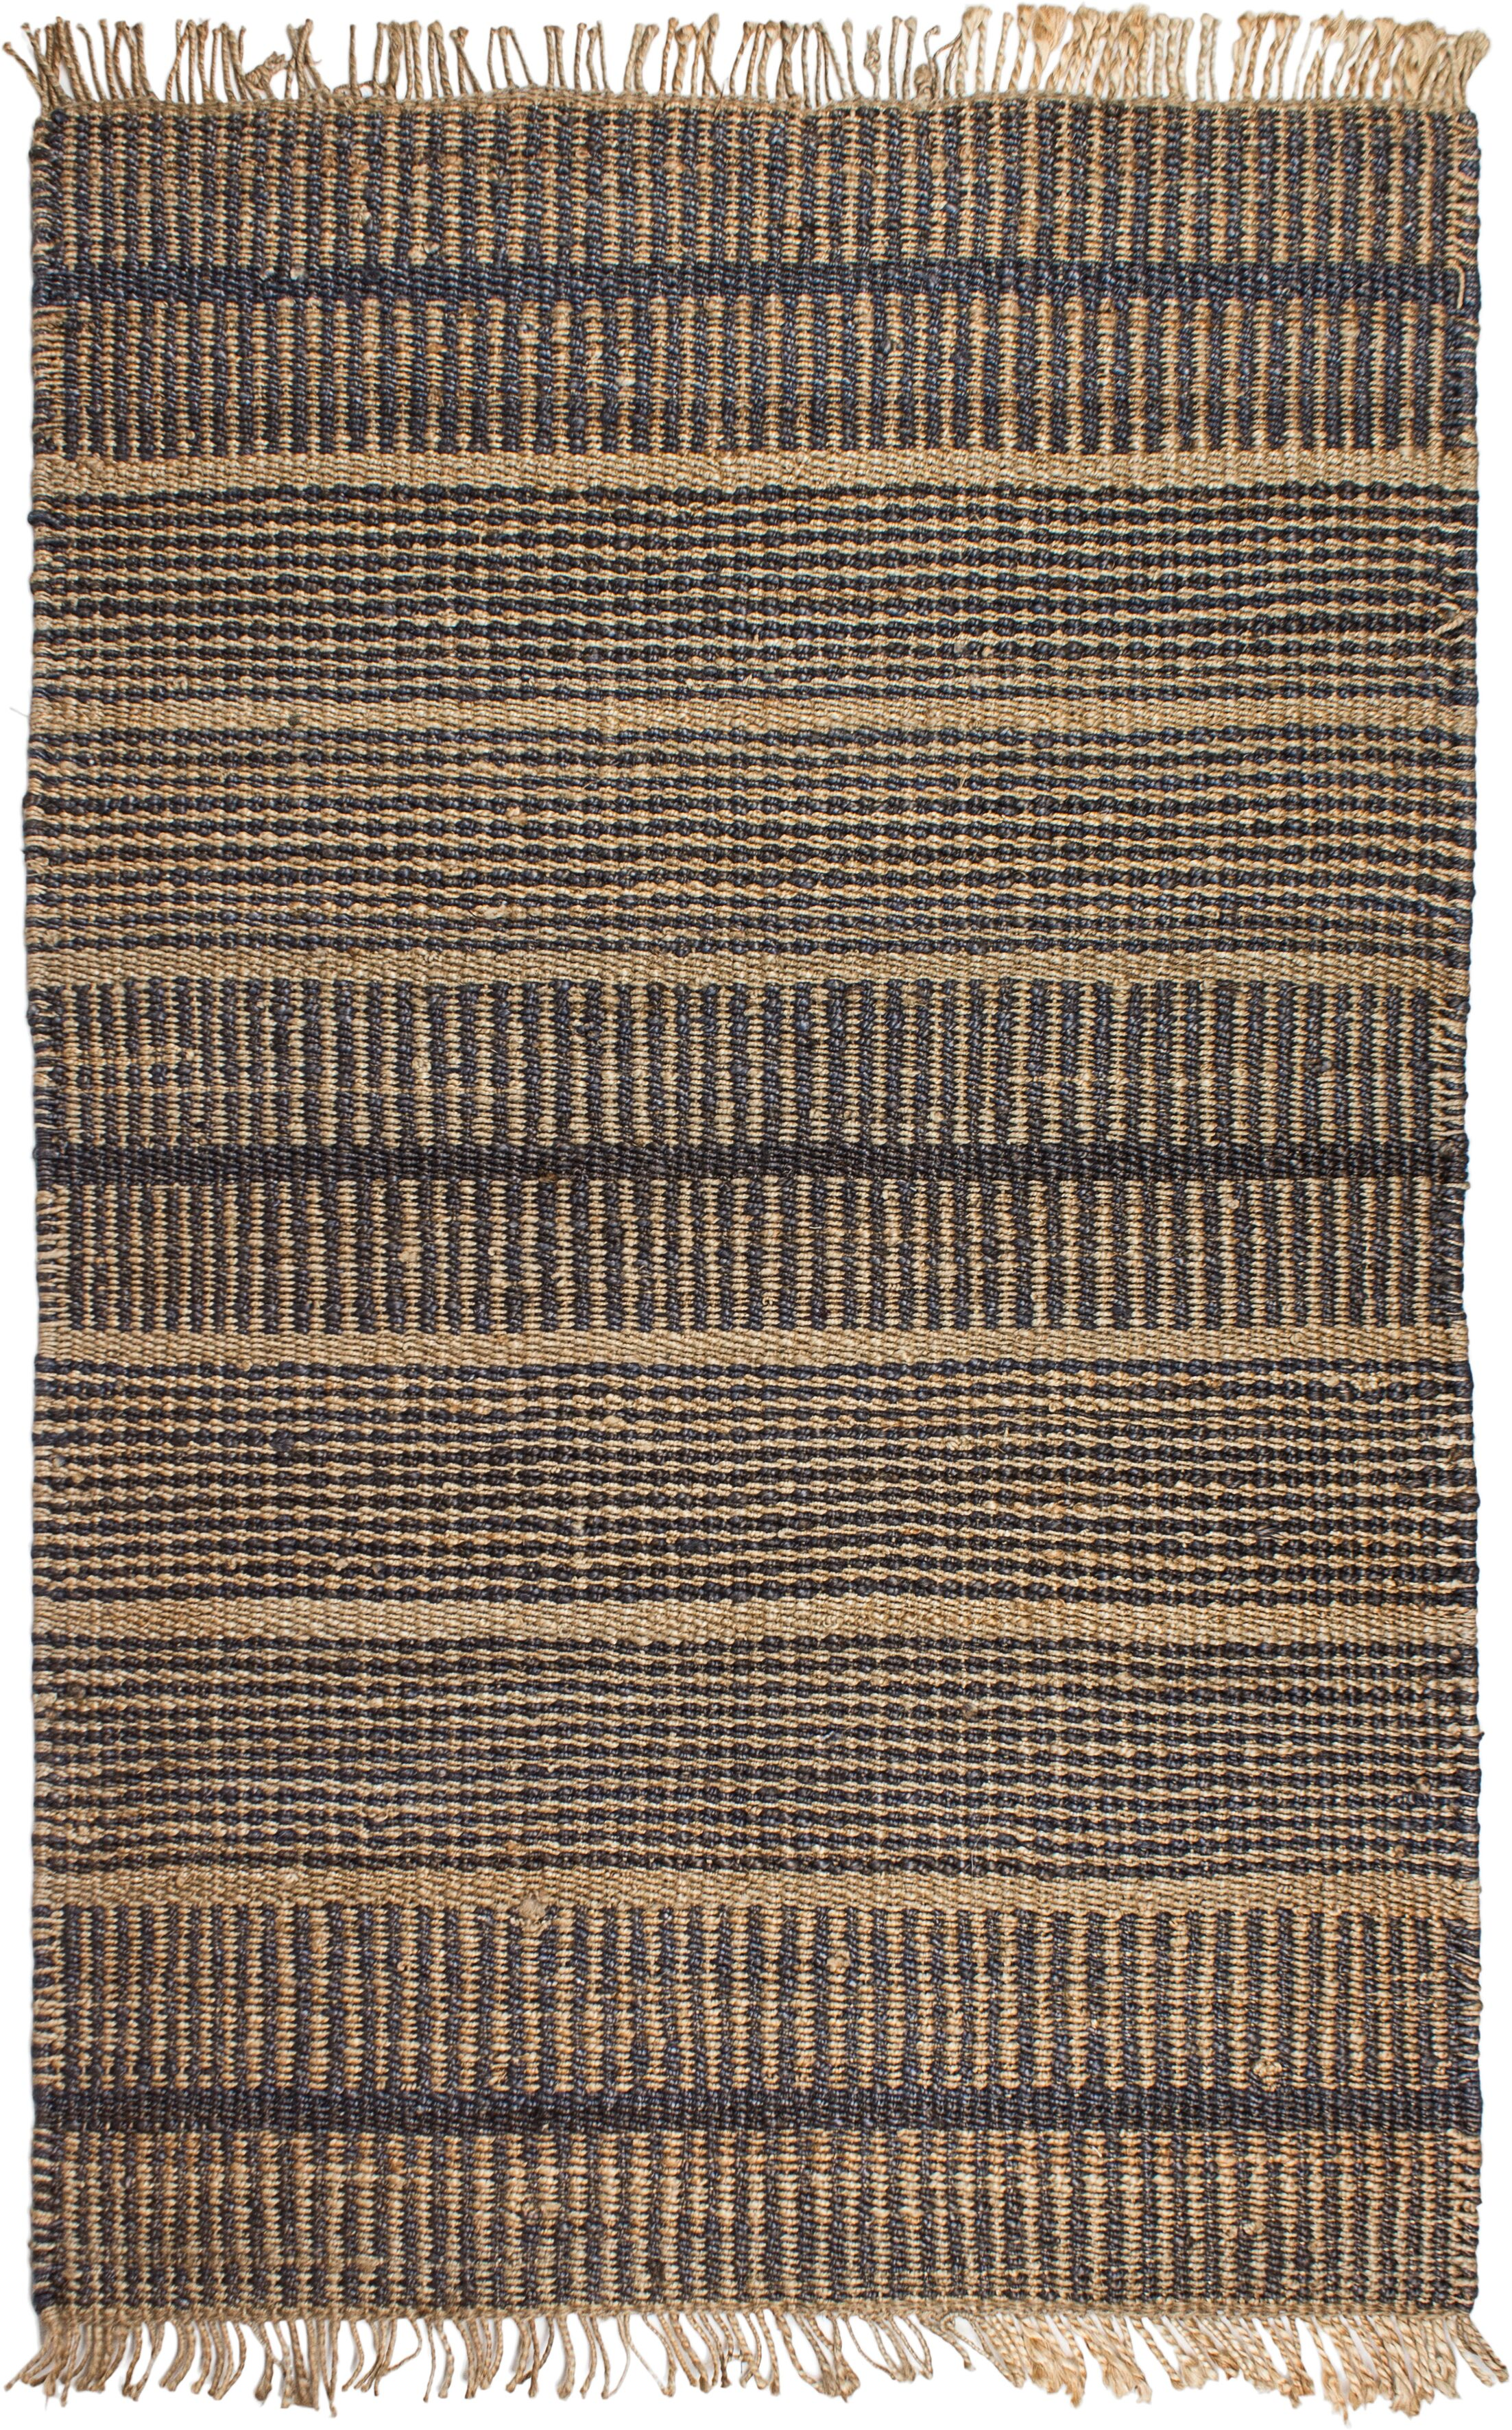 Ginger Hand-Woven Charcoal Area Rug Rug Size: Rectangle 8' x 10'